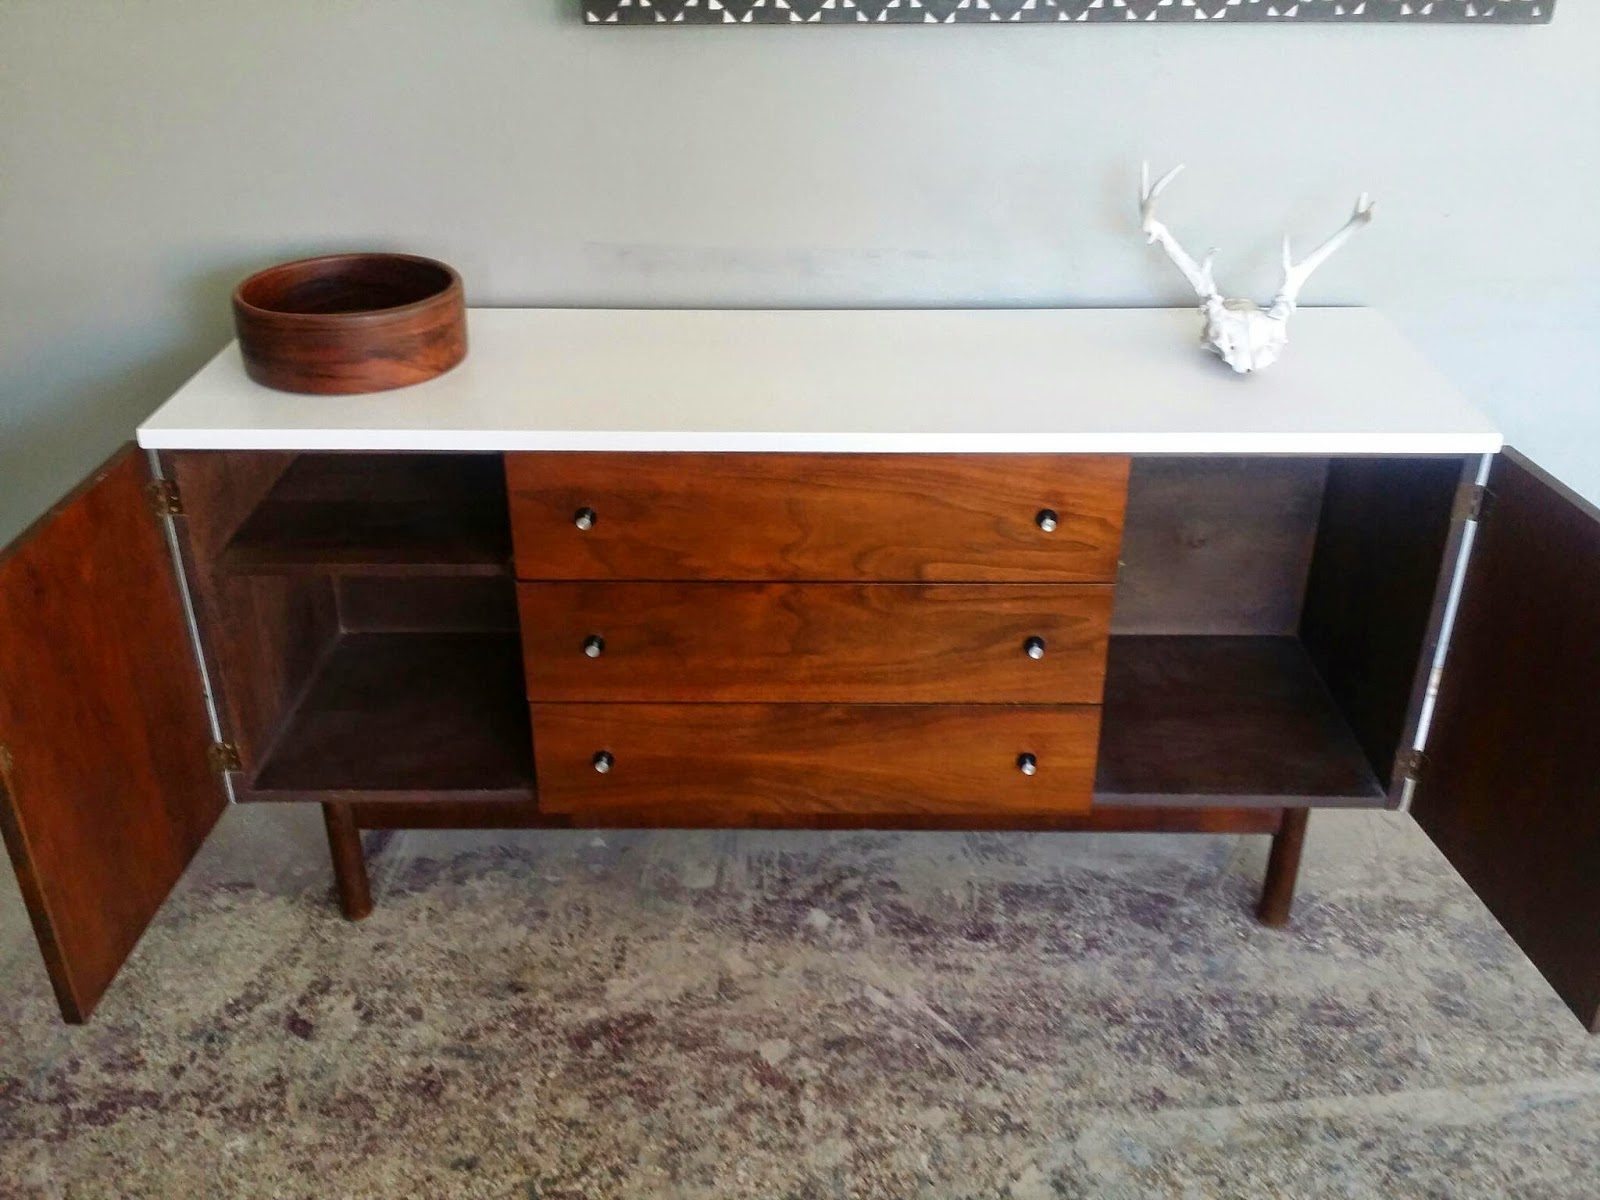 Piece Perfect To Use As A Media Console Credenza Buffet Sideboard Etc . Full resolution  portrait, nominally Width 1600 Height 1200 pixels, portrait with #713417.